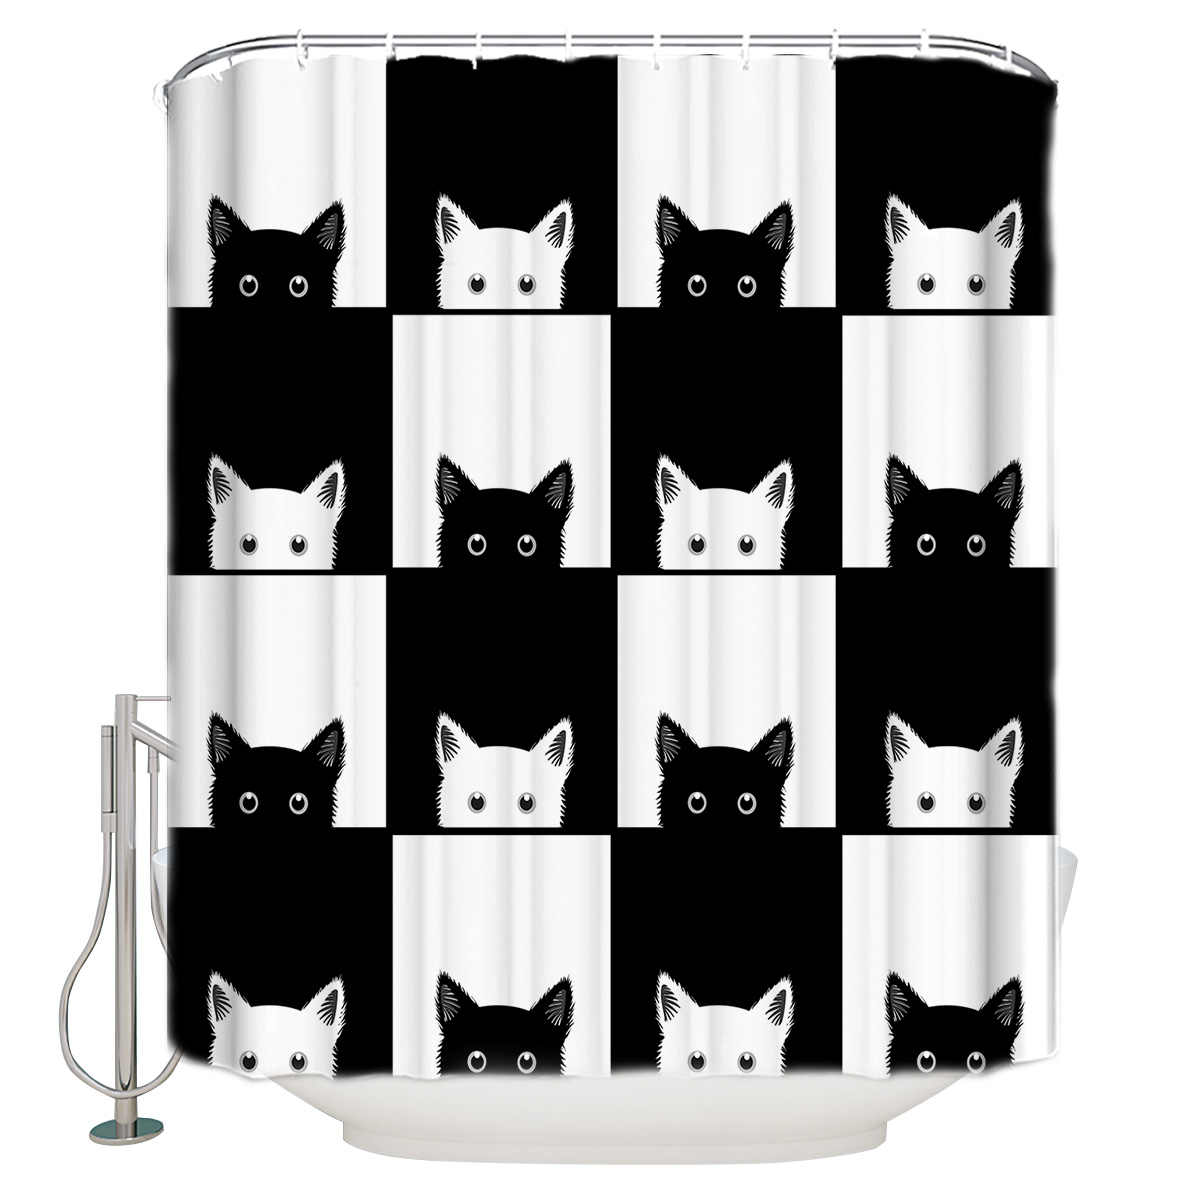 Geometic Black White Cat Shower Curtain Waterproof Bathroom Curtains Polyester Fabric Shower Curtains Hooks for Bathroom Decor